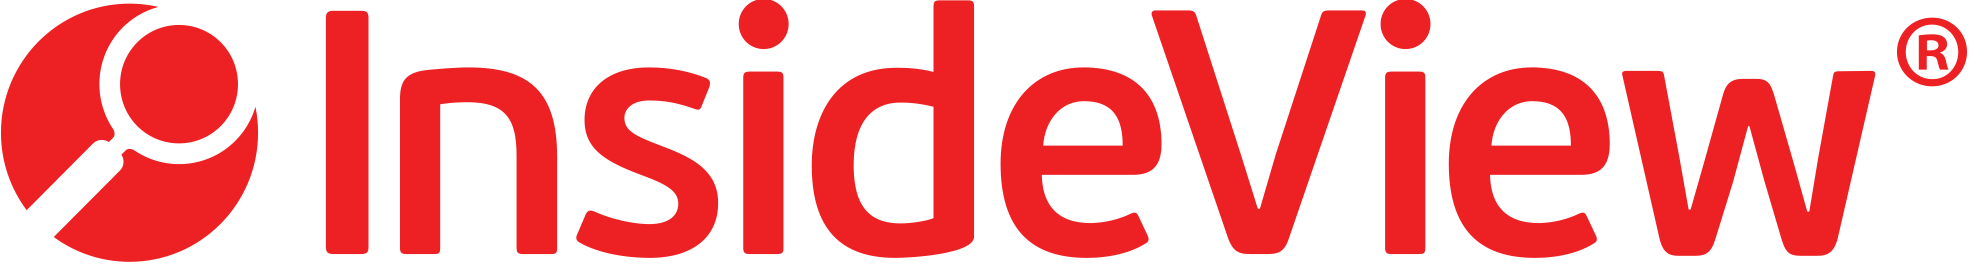 insideview-logo.png